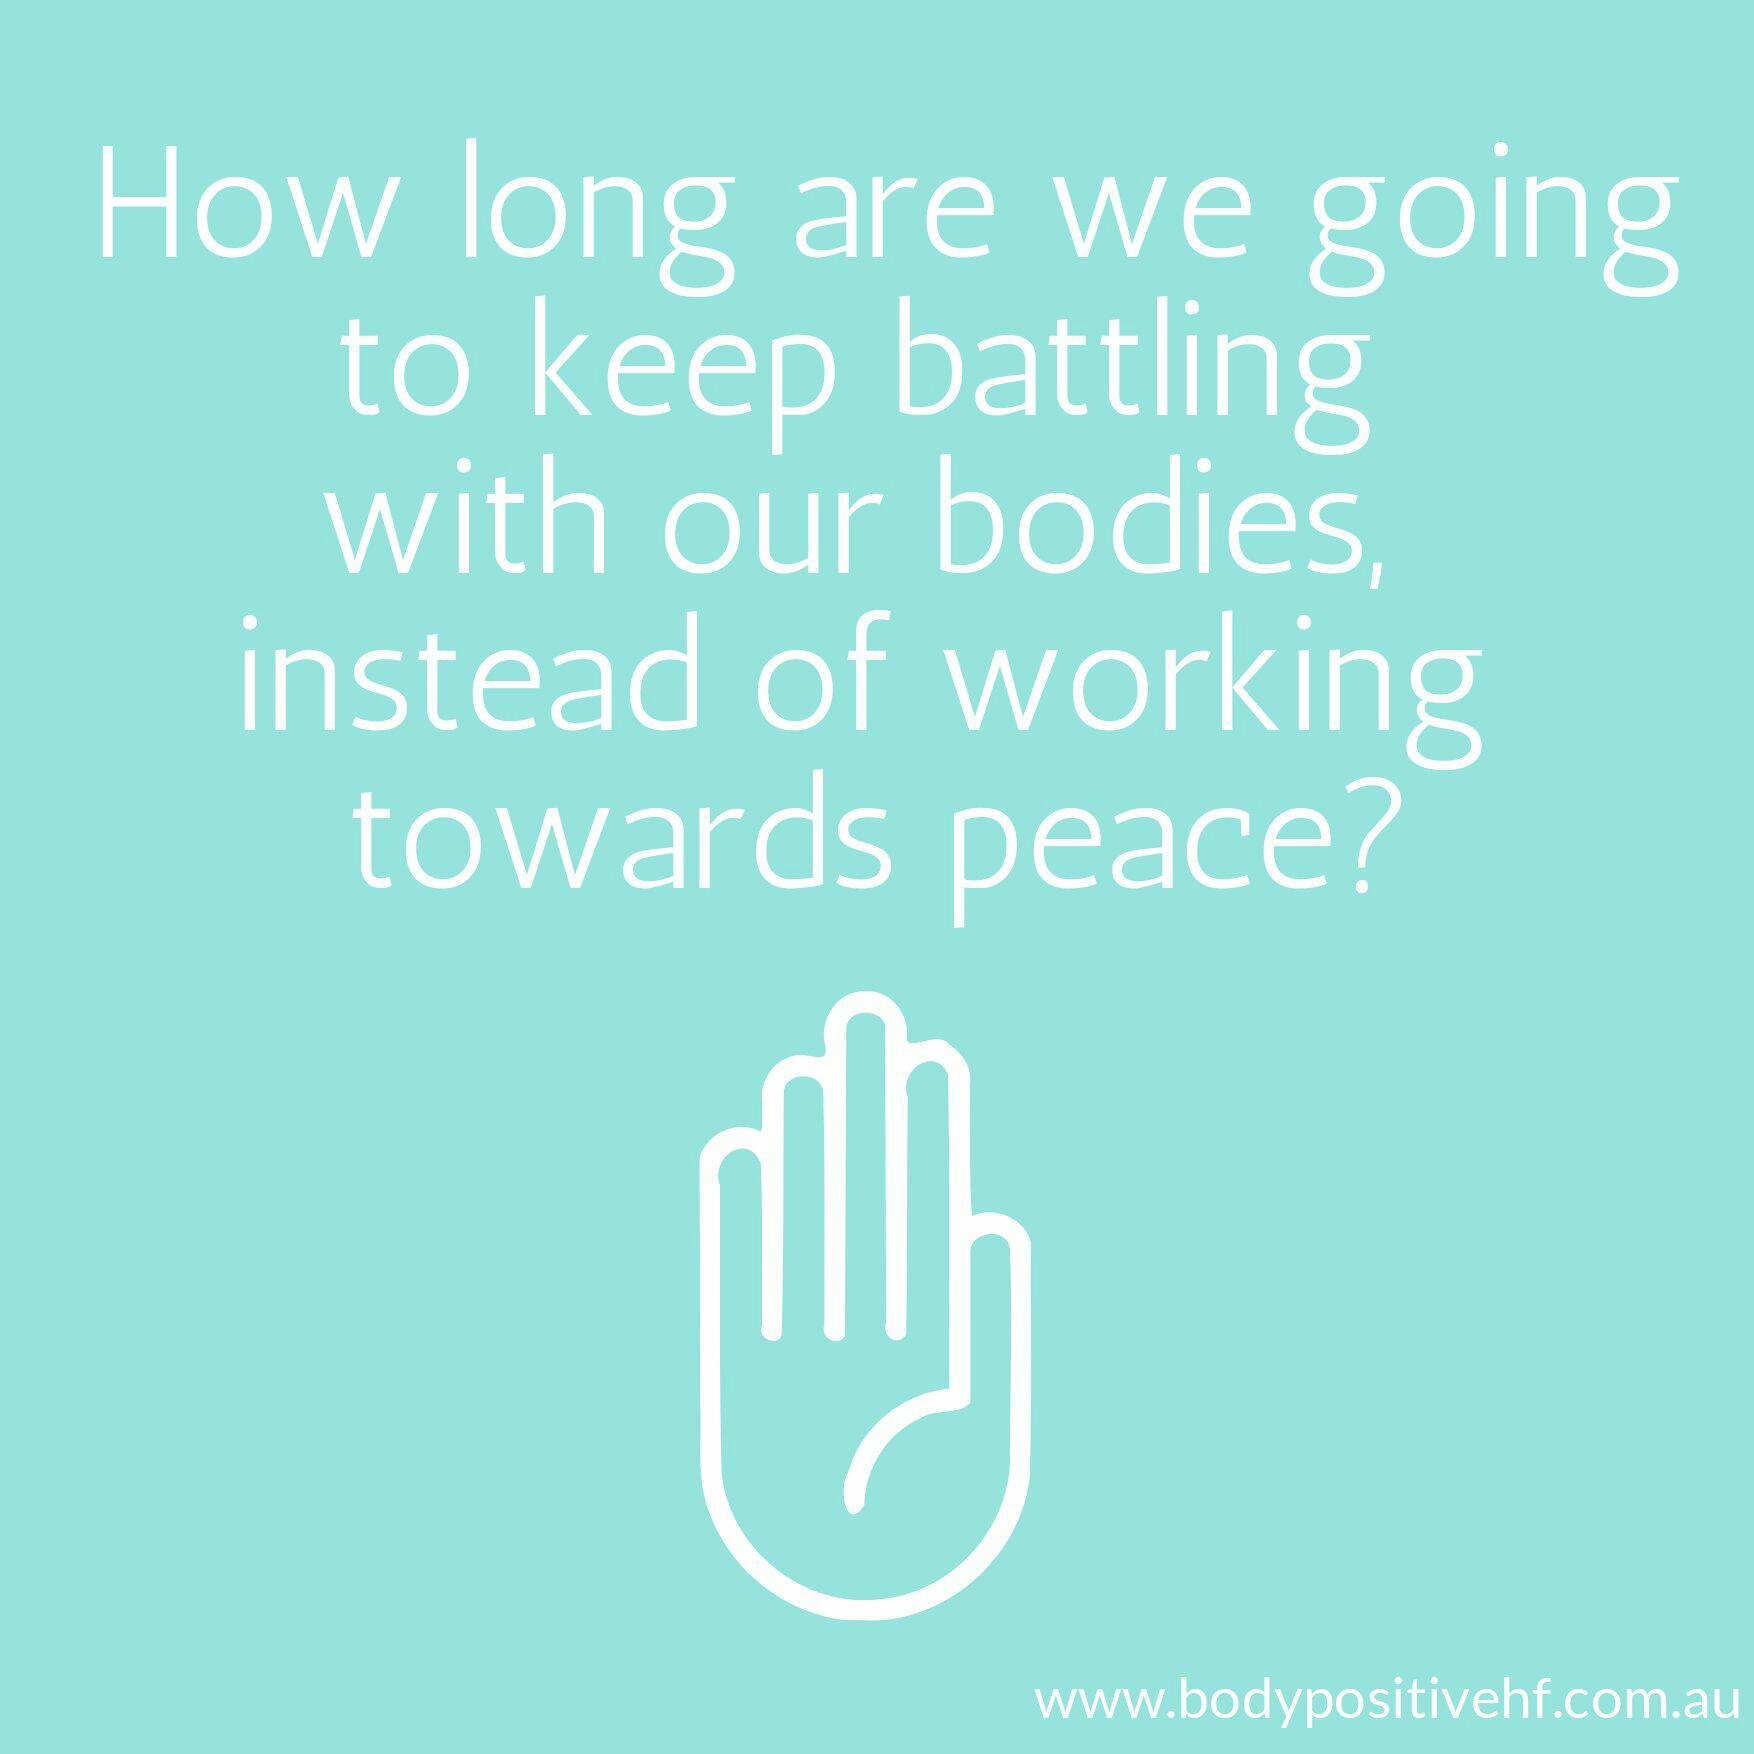 text reads: how long are we going to keep battling with our bodies instead of working towards peace?